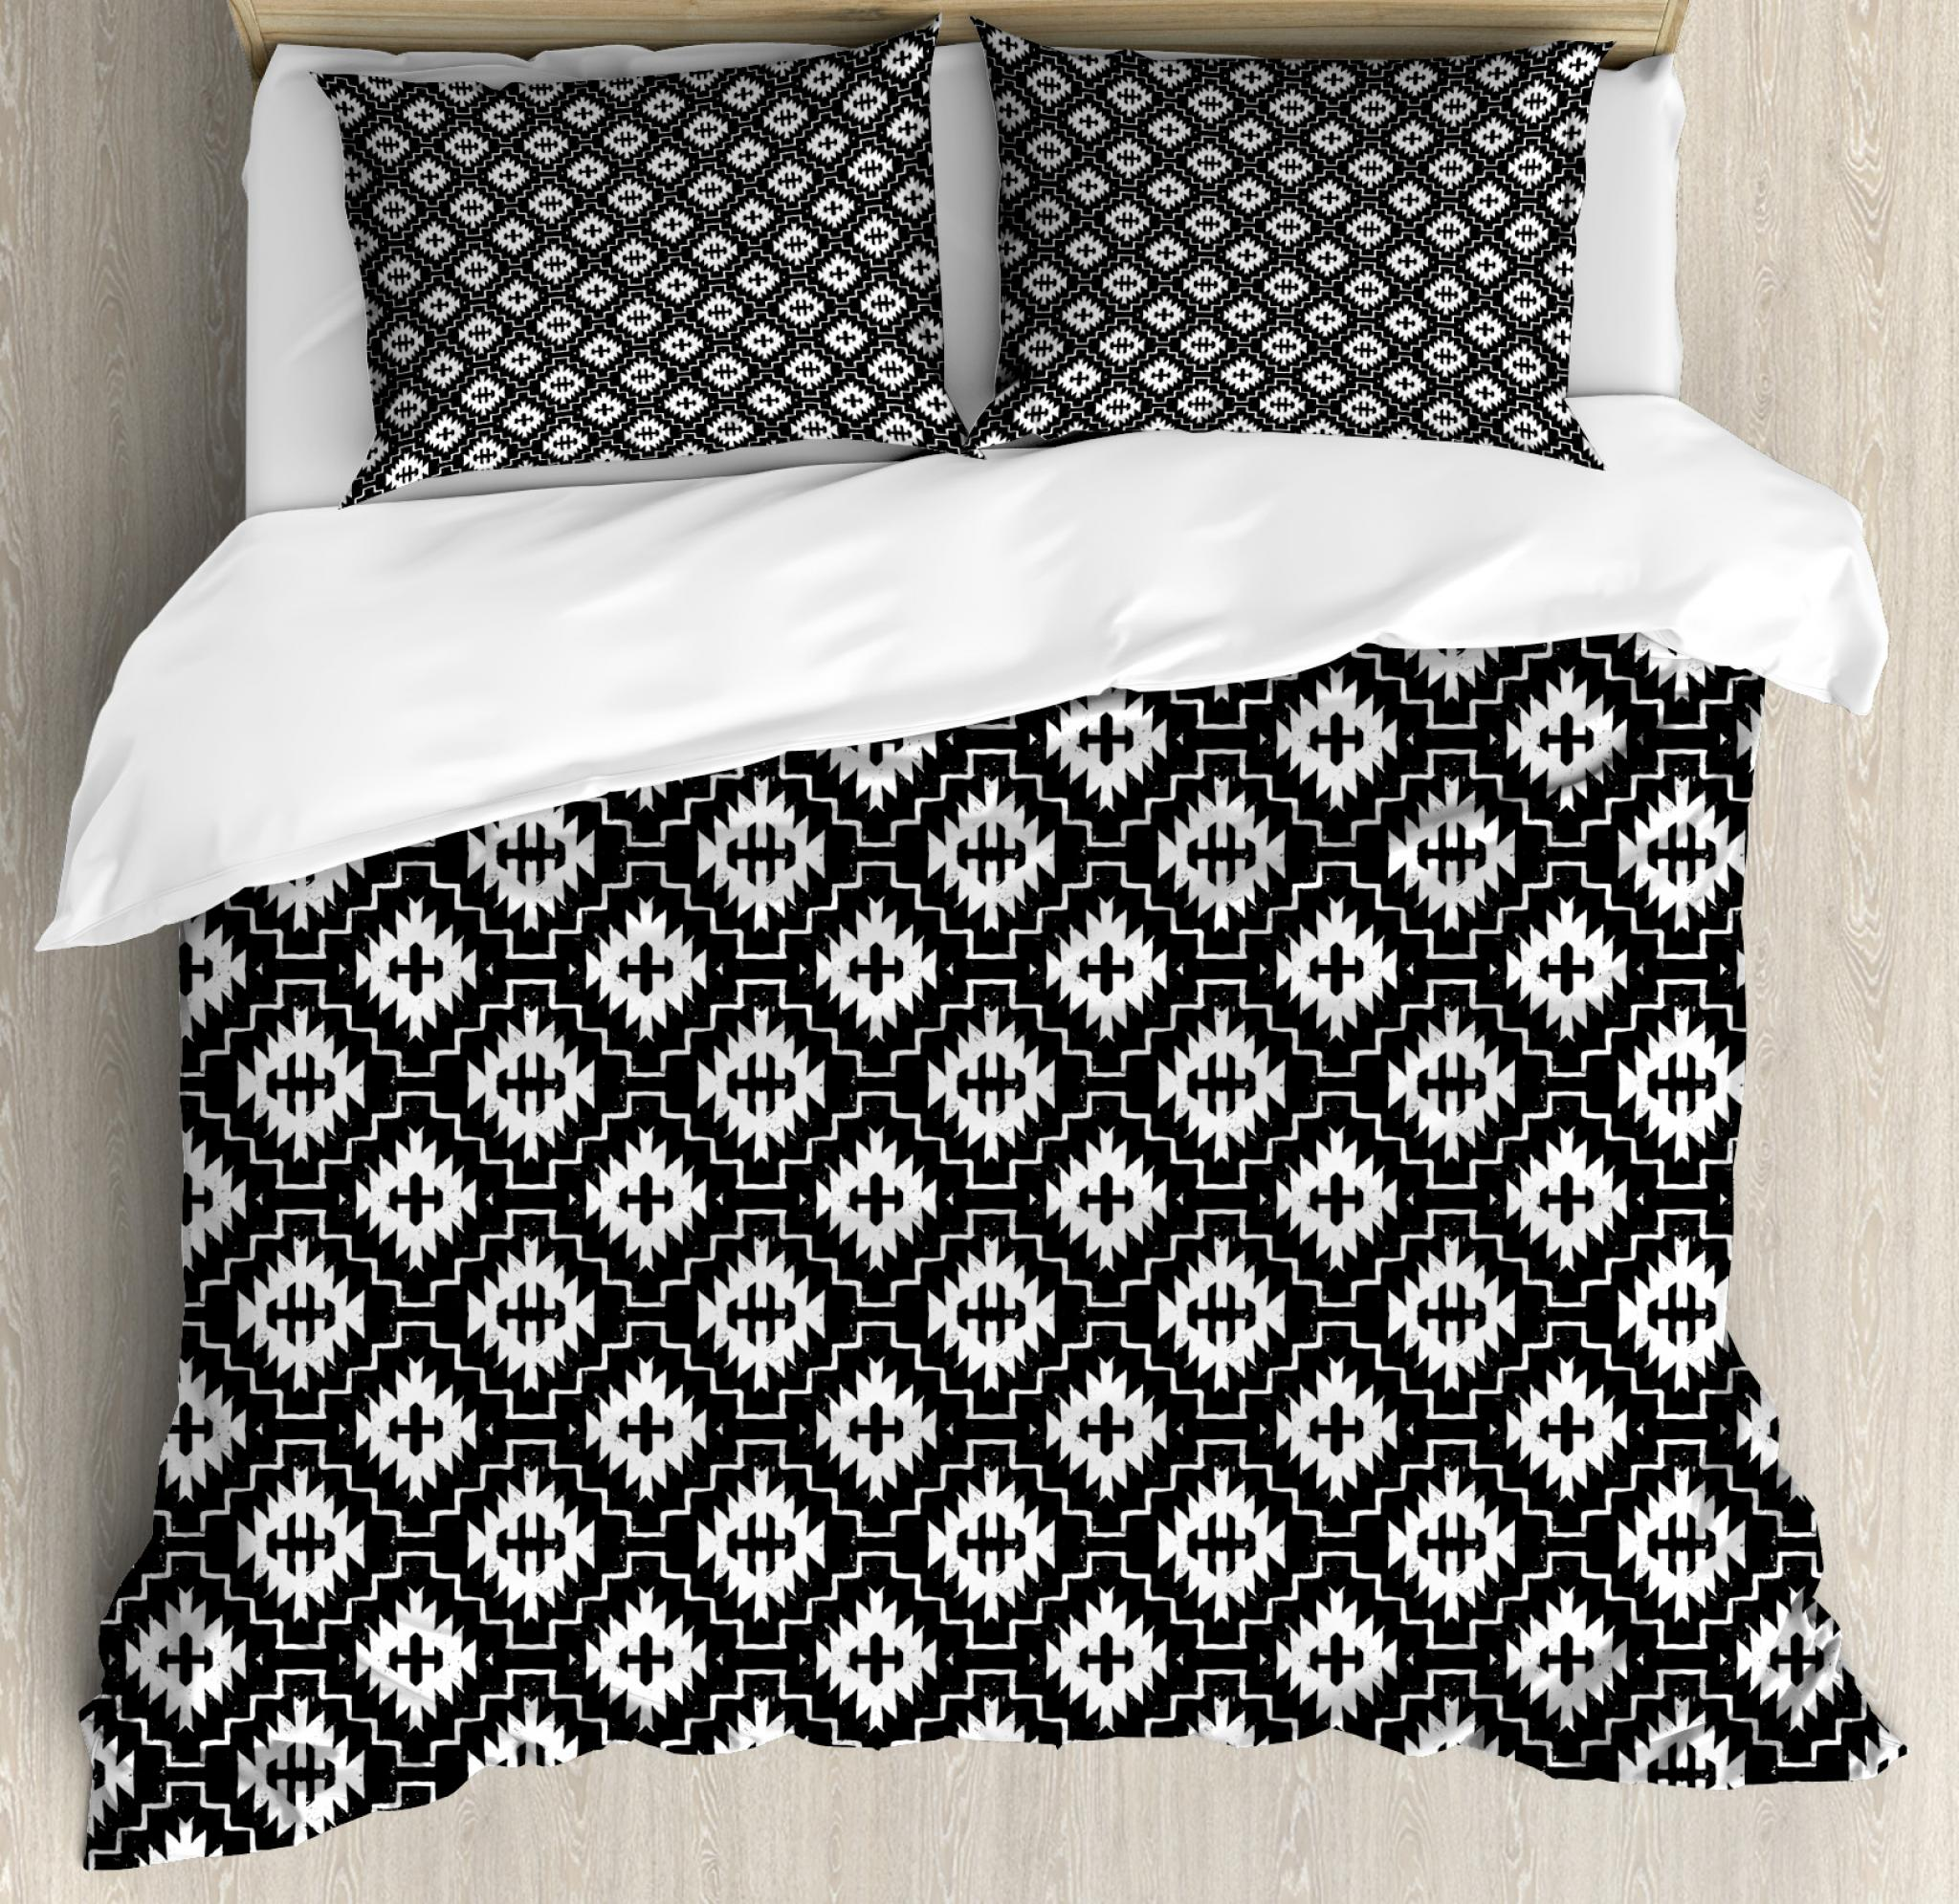 Aztec King Size Duvet Cover Set, Native Ornamental with Classic Victorian Damask Baroque Effects Ethnic Pattern, Decorative 3 Piece Bedding Set with 2 Pillow Shams, Black and White, by Ambesonne